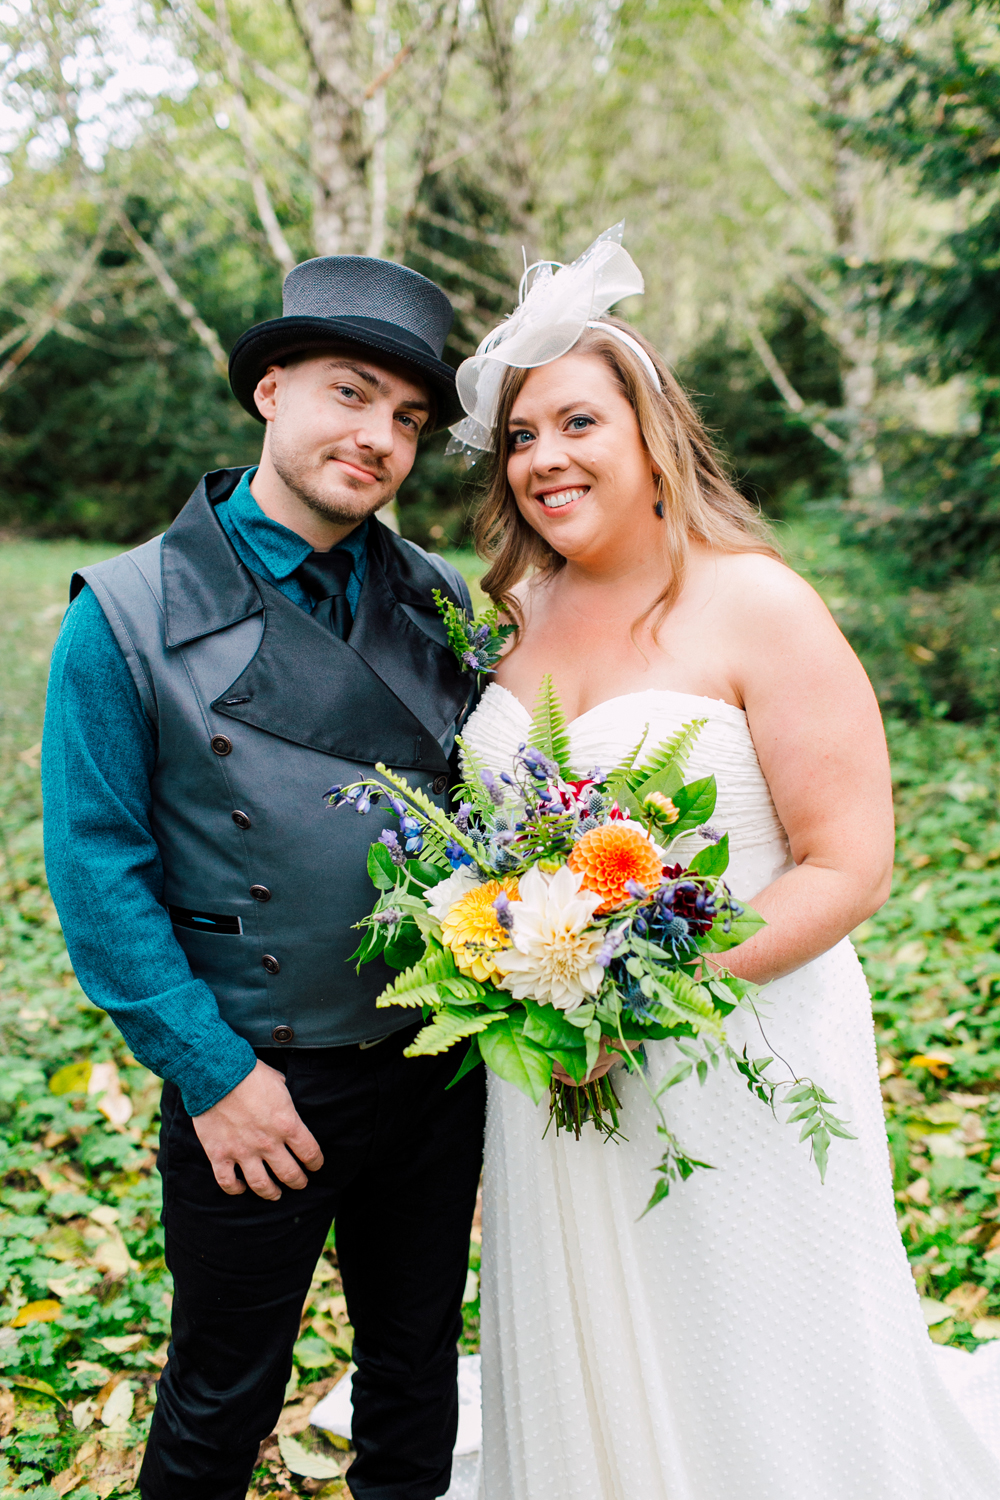 020-bellingham-wedding-photographer-wandering-waters-katheryn-moran-emma-eric.jpg